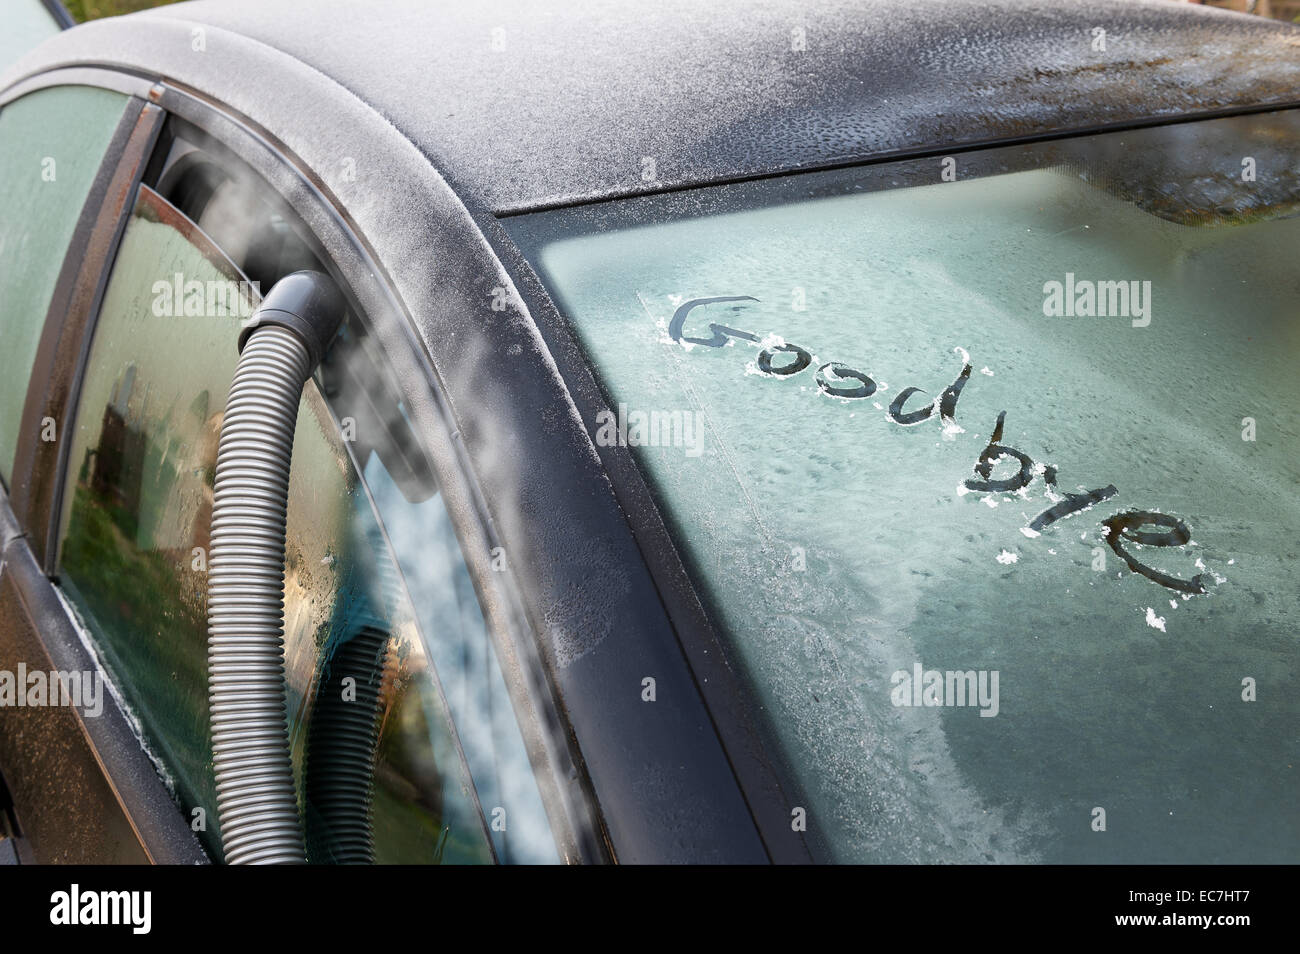 Carbon Monoxide Poisoning Suicide : tragic end and last call to life problems so sever resulting in stock photo 76385015 alamy ~ Russianpoet.info Haus und Dekorationen